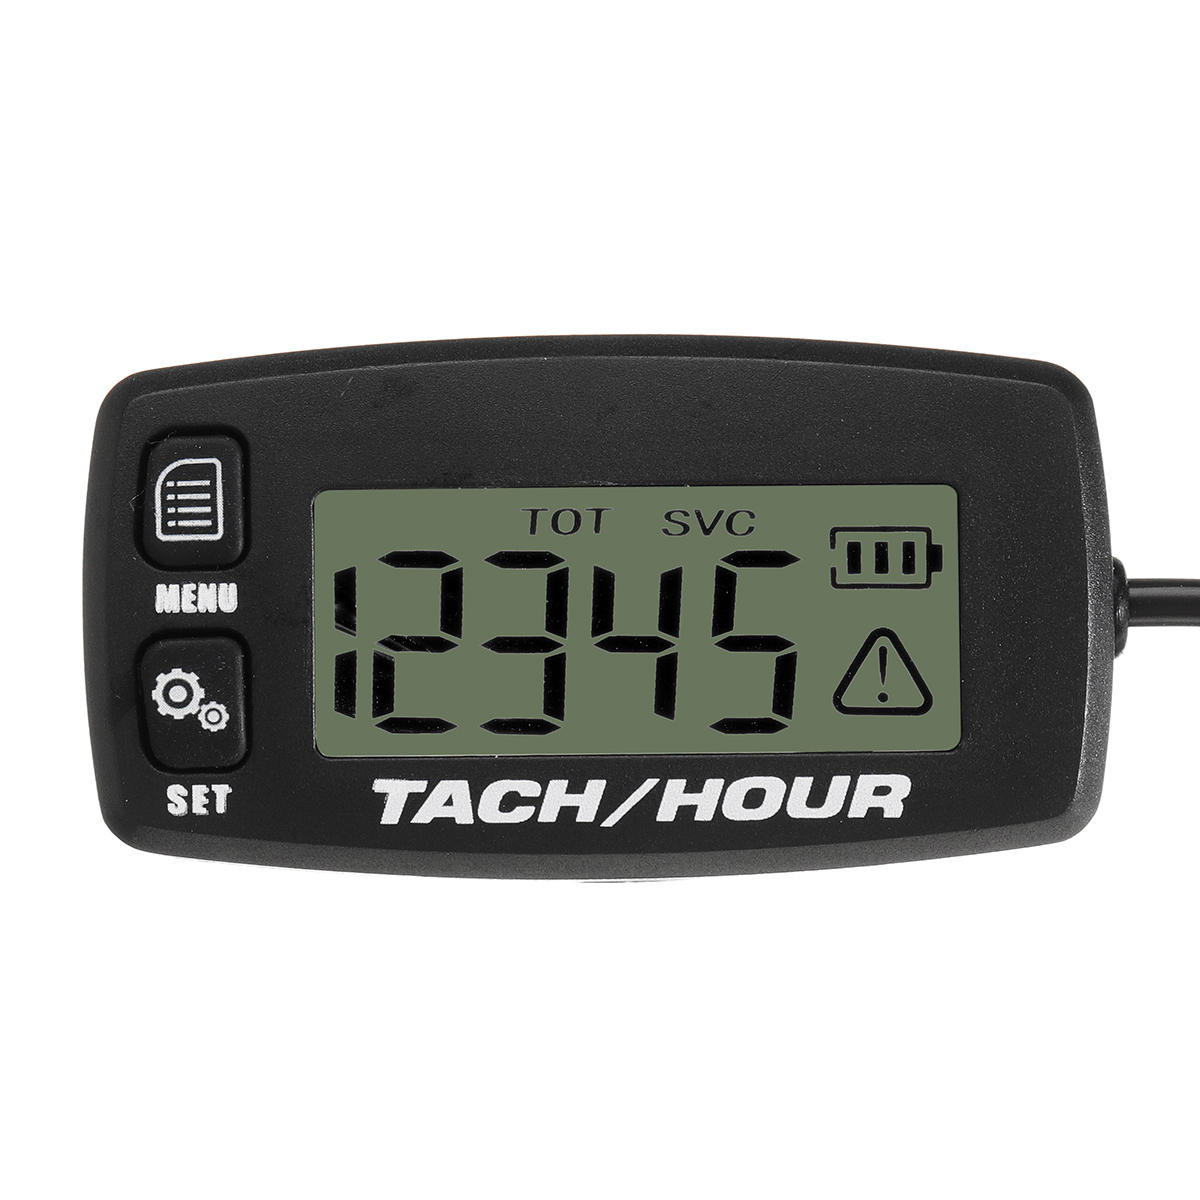 Backlit LCD Digital Tach Hour Meter Tachometer Waterproof 2/4 Stroke Engine from Banggood